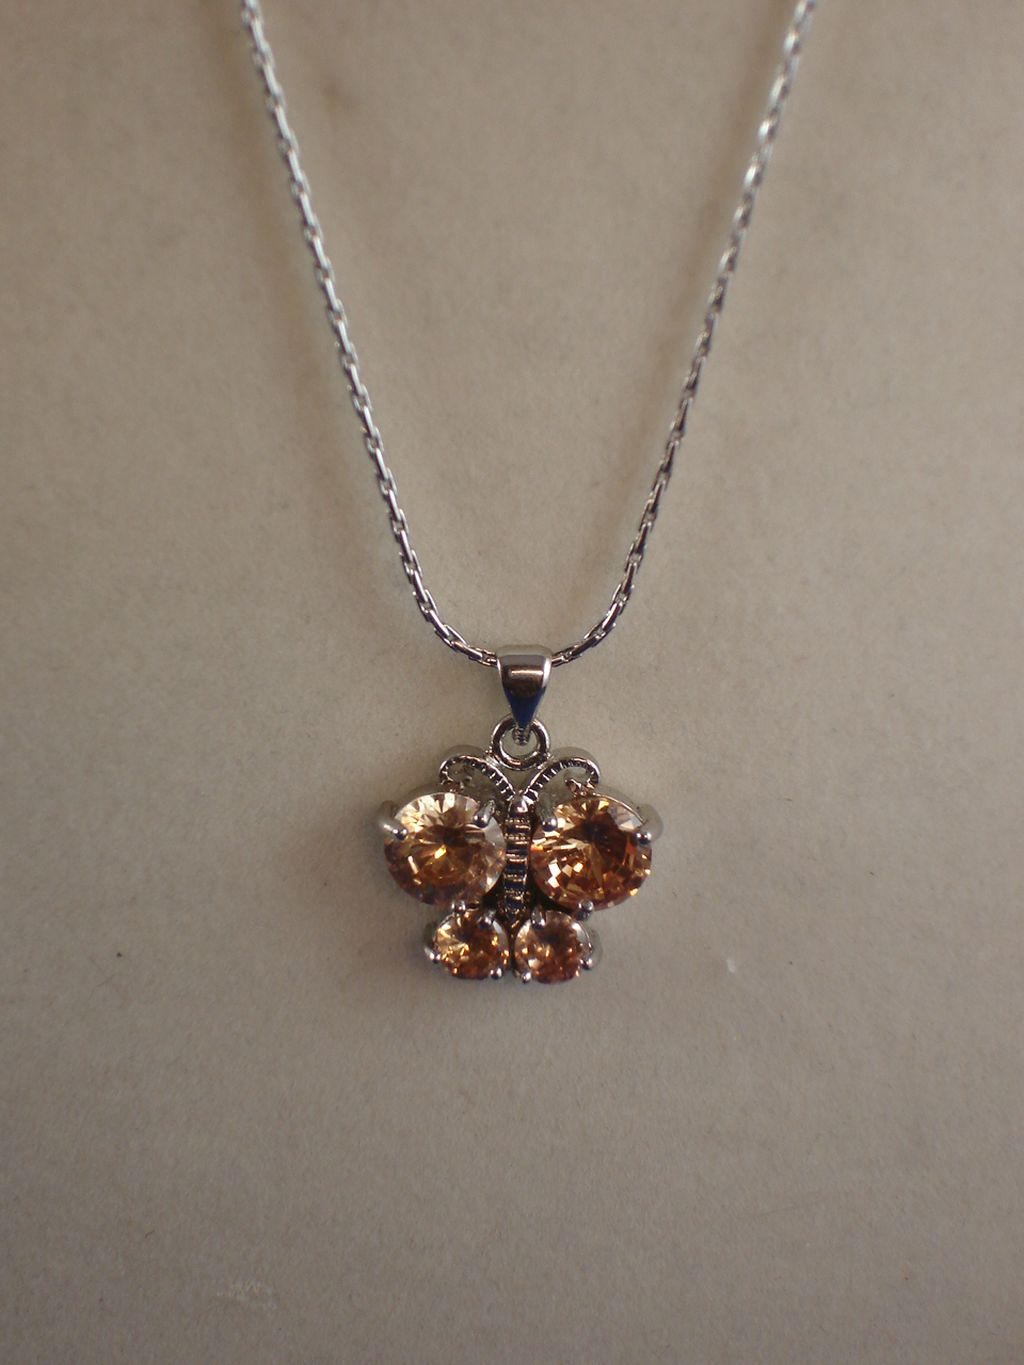 "Topaz Cubic Zirconia Butterfly NeckLace, CZ Crystals, Sterling Silver Plated 16"" Chain, Anti-allergic Jewelry"